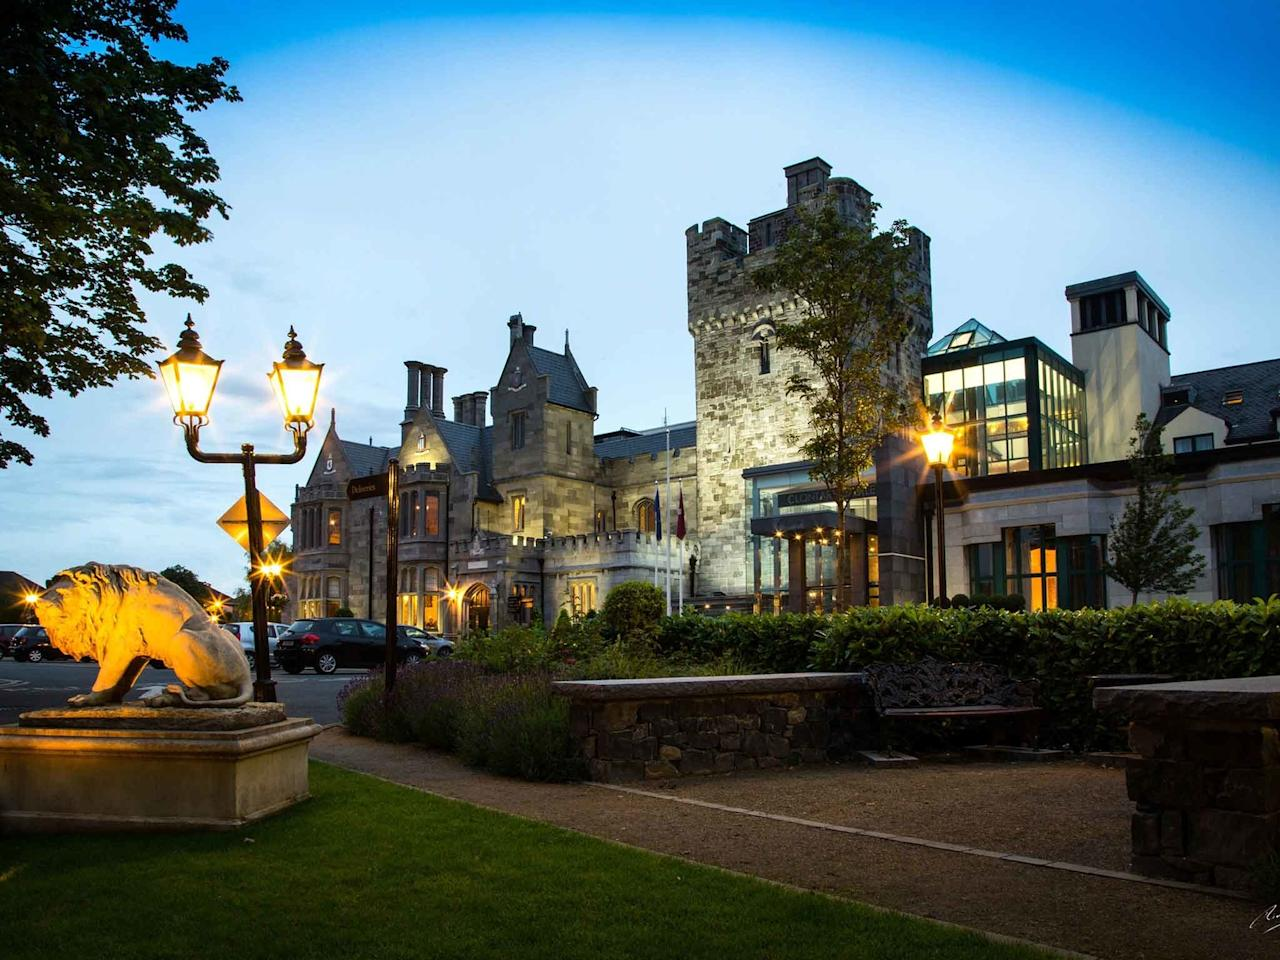 """For <a href=""""https://www.cntraveler.com/gallery/best-things-to-do-in-dublin?mbid=synd_yahoo_rss"""">a trip to Dublin</a>, Clontarf Castle Hotel has it all. Close to the city center—the coastal suburb is a 10-minute drive away—<em>check</em>. On site dining worth imbibing—a Michelin-starred chef, a boozy afternoon tea option (hello Bombay Sapphire), and a gastropub that slings a mean prime rib burger are just a few of the offerings—<em>check</em>. Beautiful, comfortable, functional bedrooms—they're equipped with pillow top mattresses and handmade Irish Soap Company toiletries—<em>check.</em> The only thing this haven doesn't have is Dublin's surplus of crowds."""